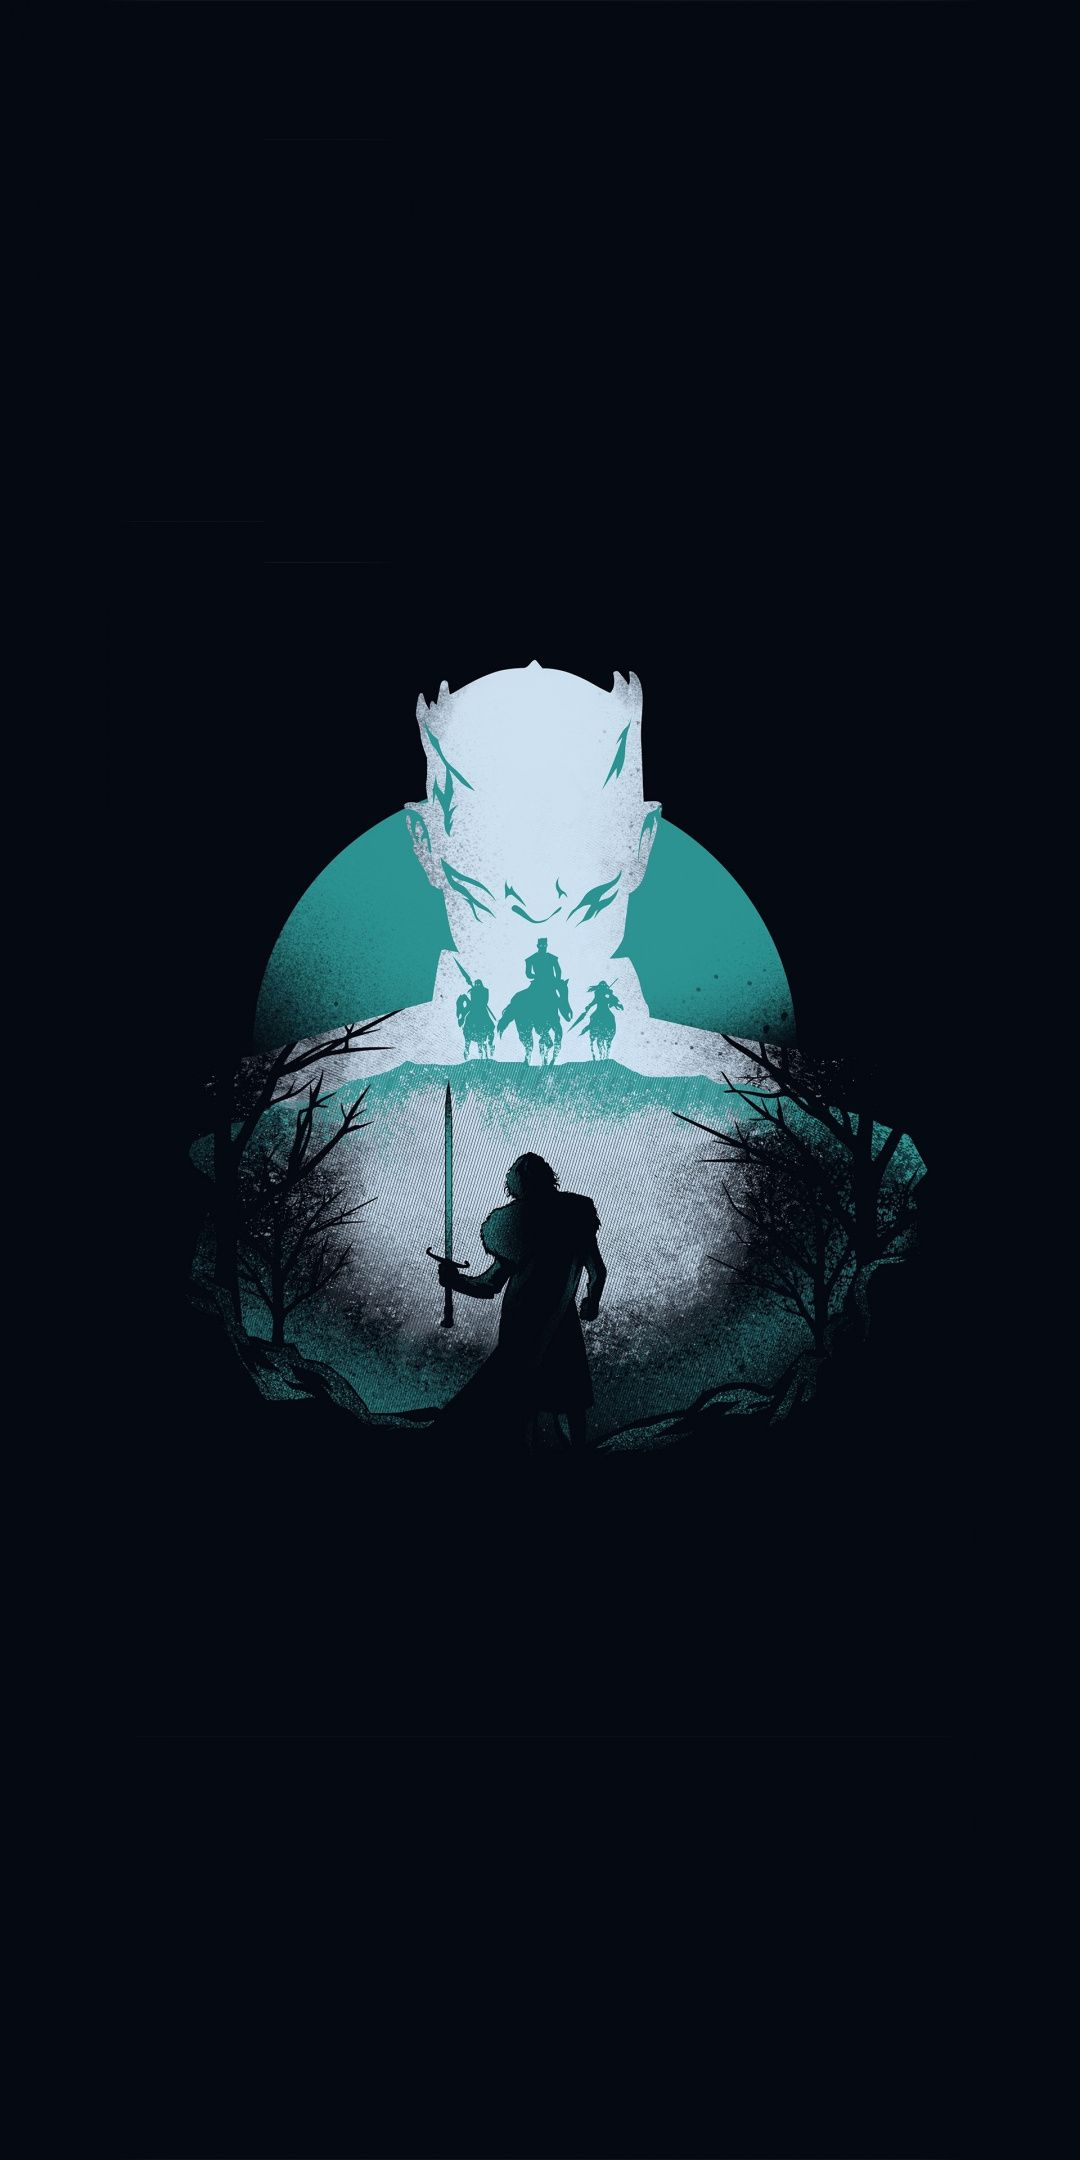 Game Of Thrones Knight King And Jon Snow Season 8 Artwork 1080x2160 Wallpaper Game Of Thrones Artwork Jon Snow Art Game Of Thrones Poster